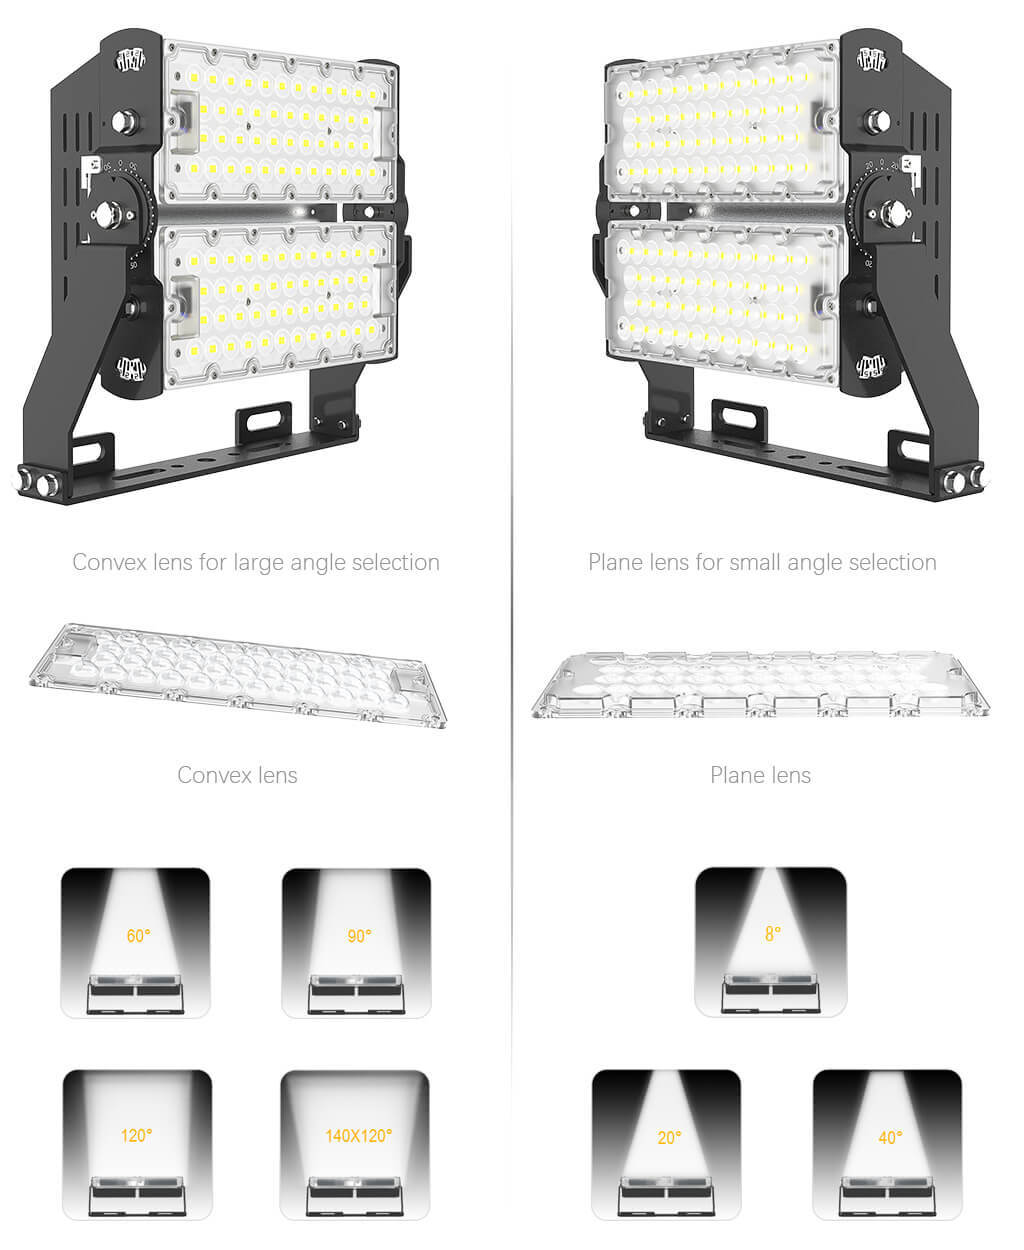 SEEKING convenient dimmable led flood lights to meet the special lighting applications for concession